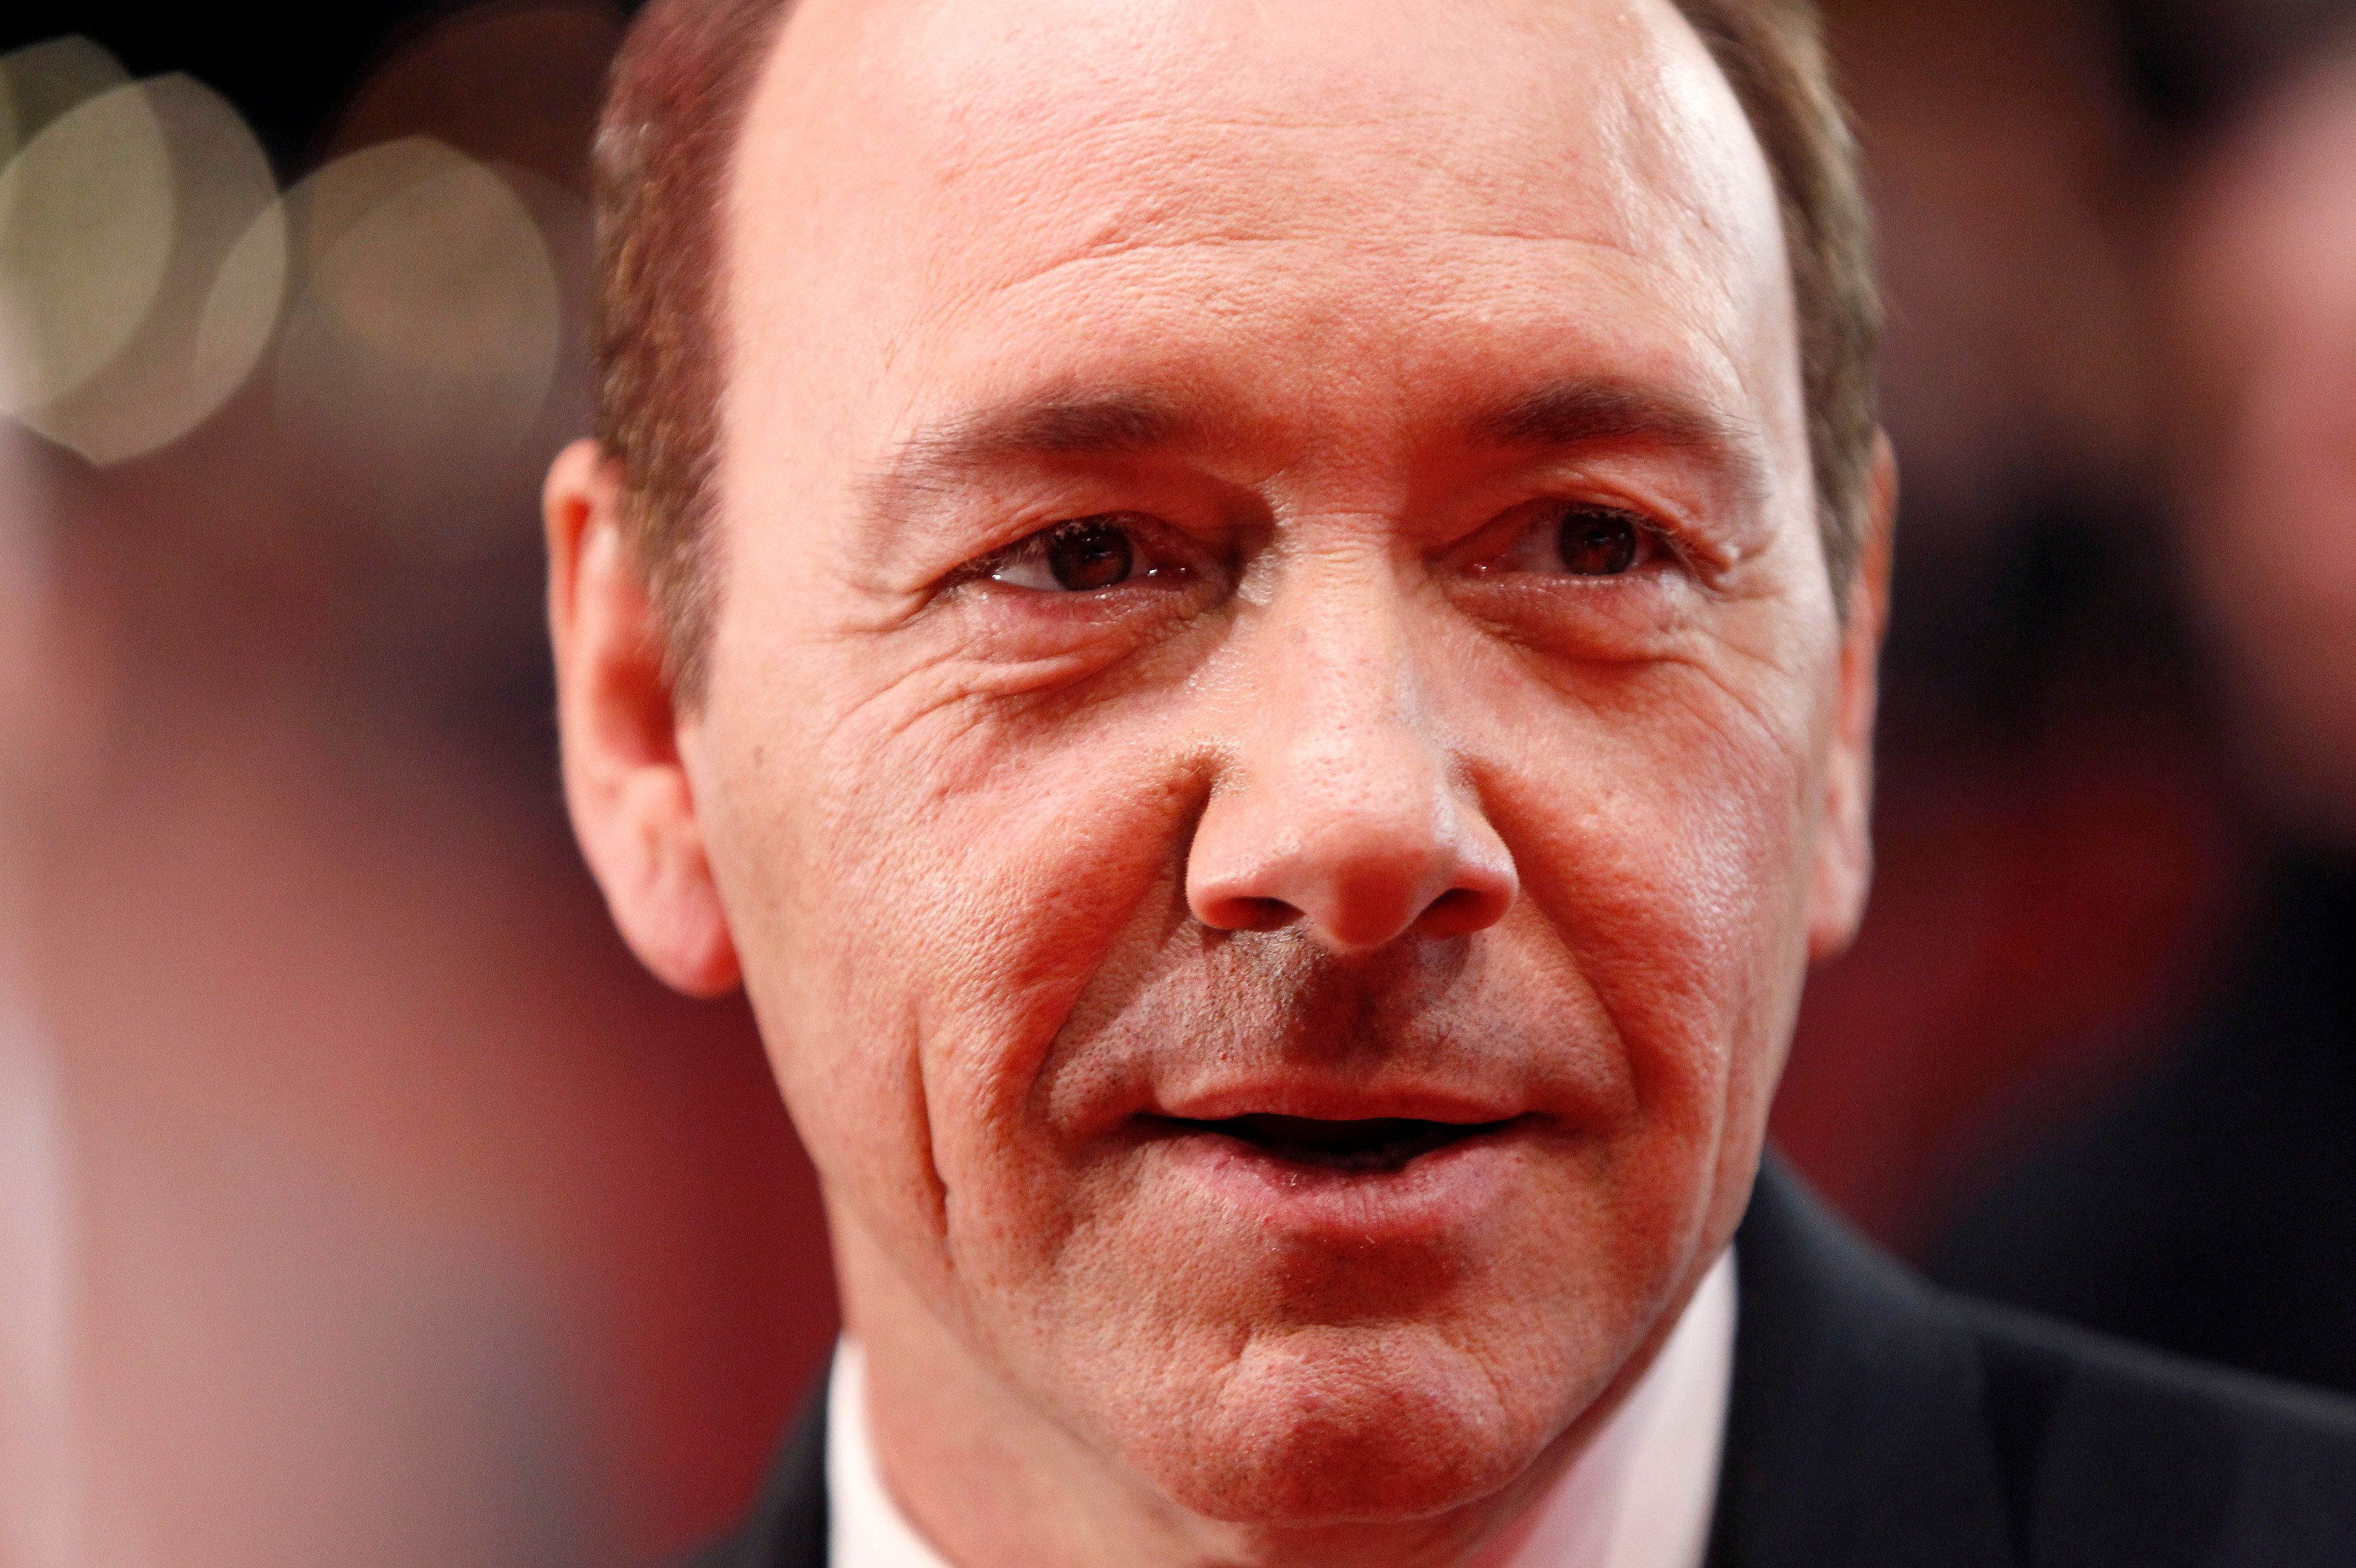 Kevin Spacey Responds To Report He Sexually Harassed Then-14-Year-Old Anthony